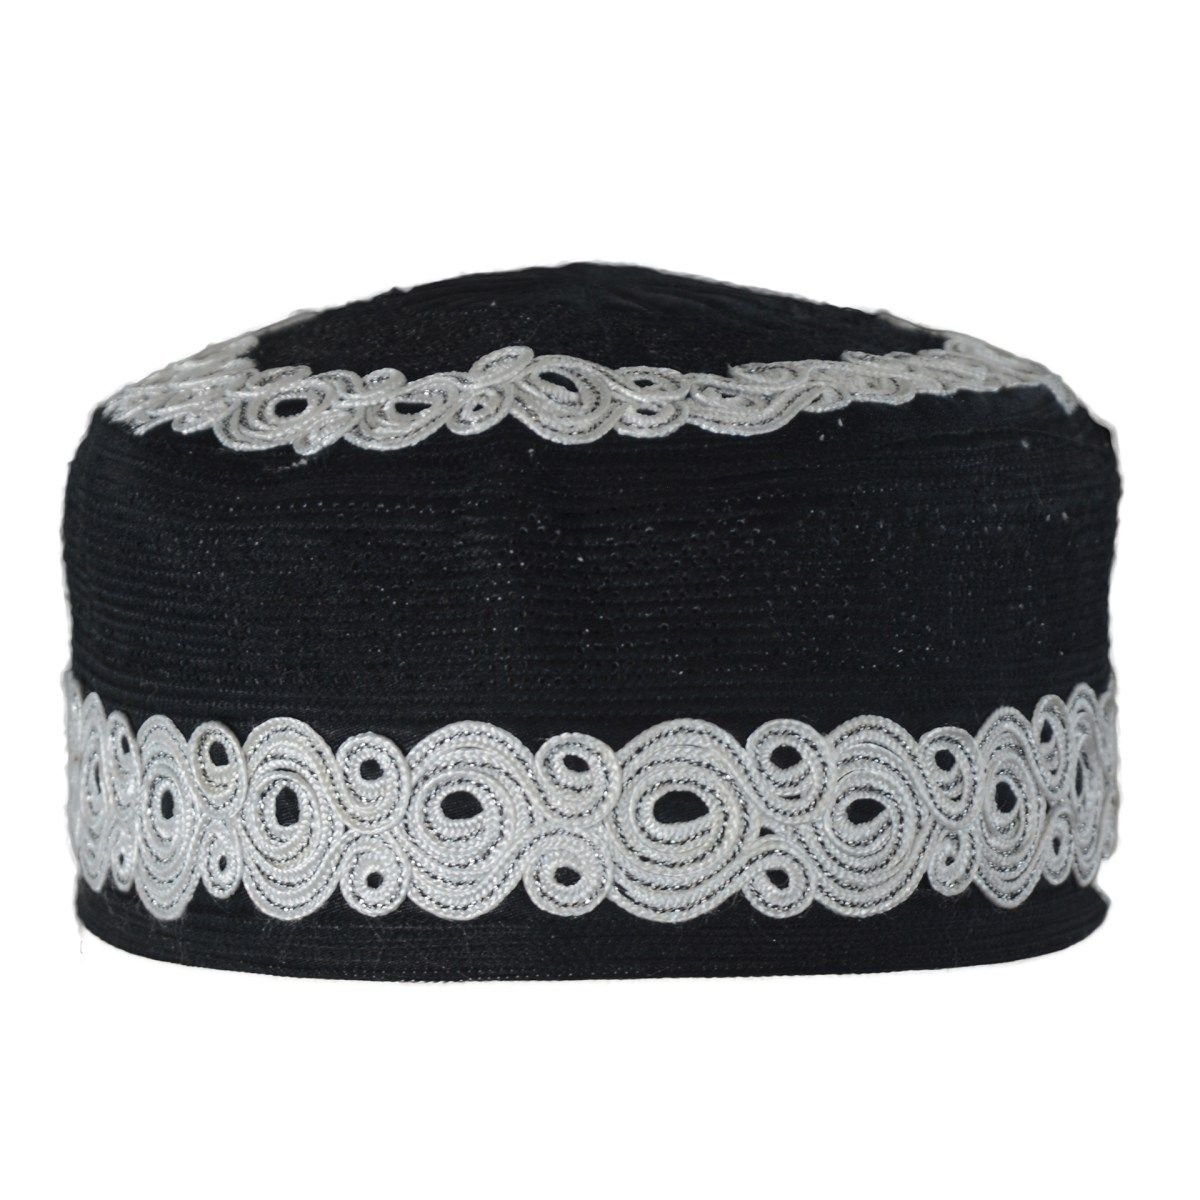 Mens Embroidered Kufi Hat/Muslim Cap with Spirals and Mosque Dome ...